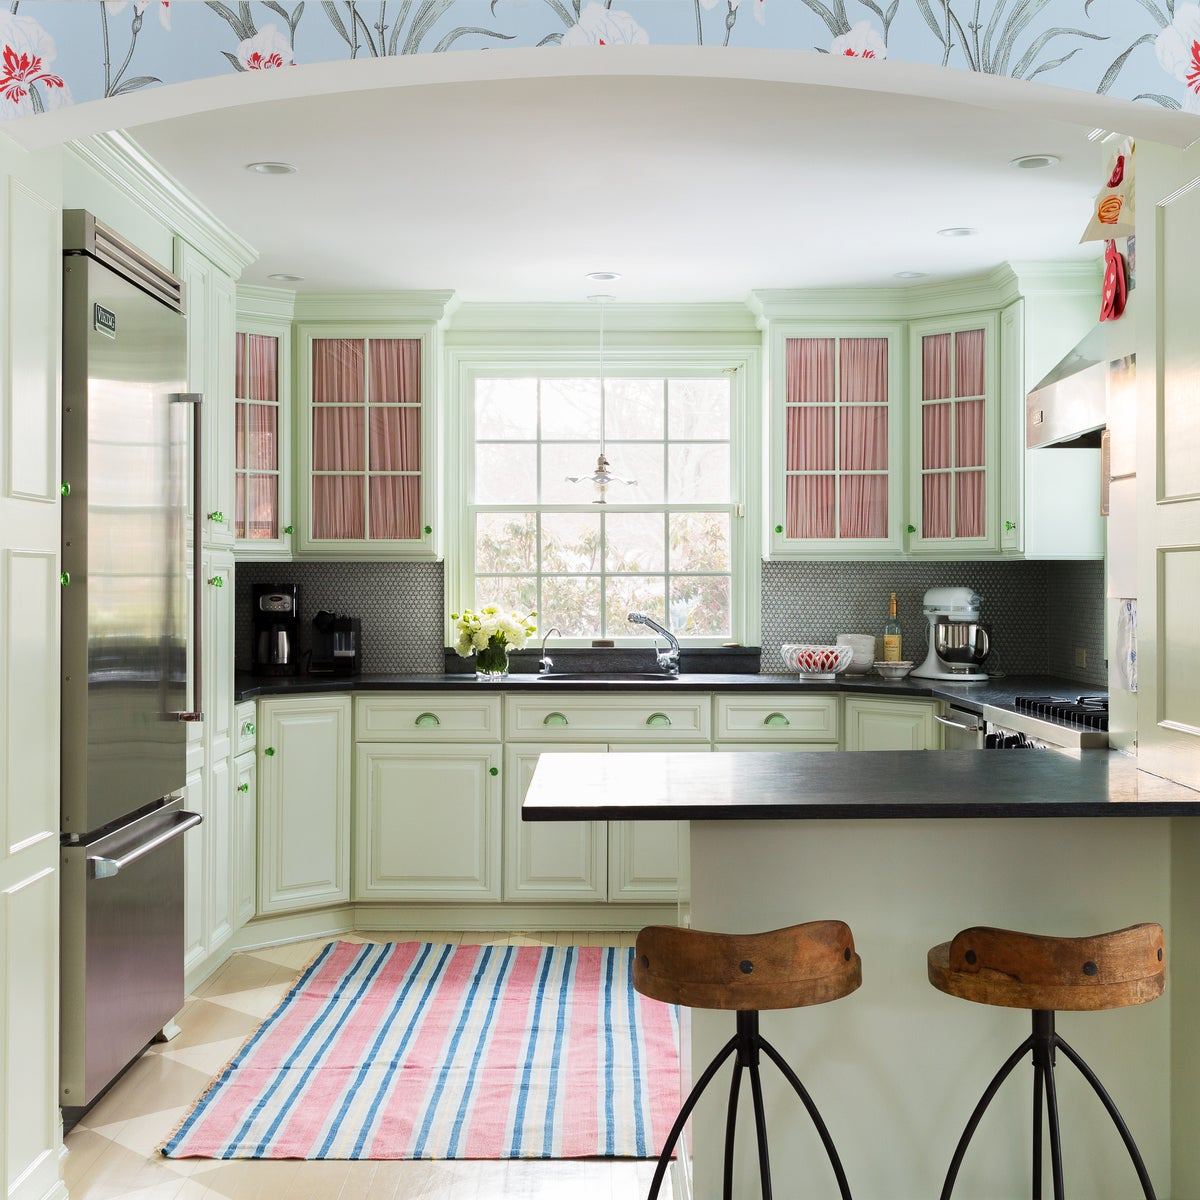 Preppy Kitchen In US By Kemble Interiors, Inc